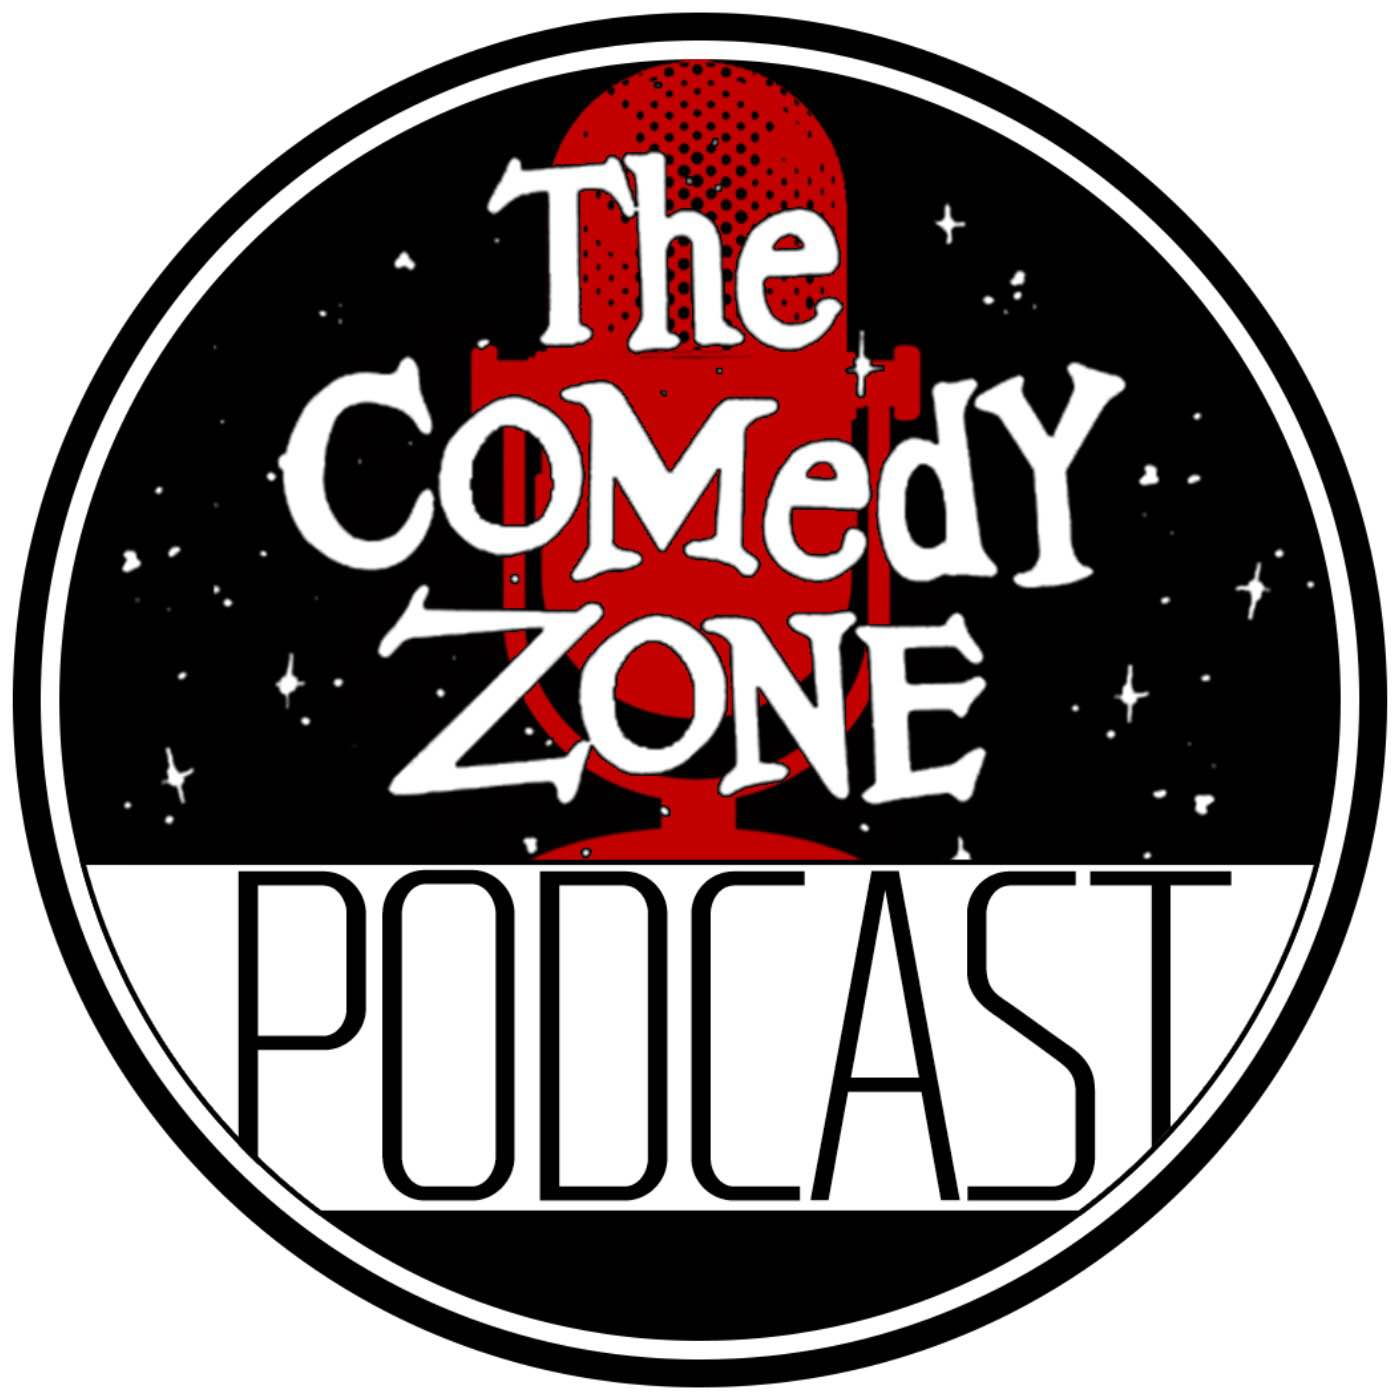 The Comedy Zone Podcast